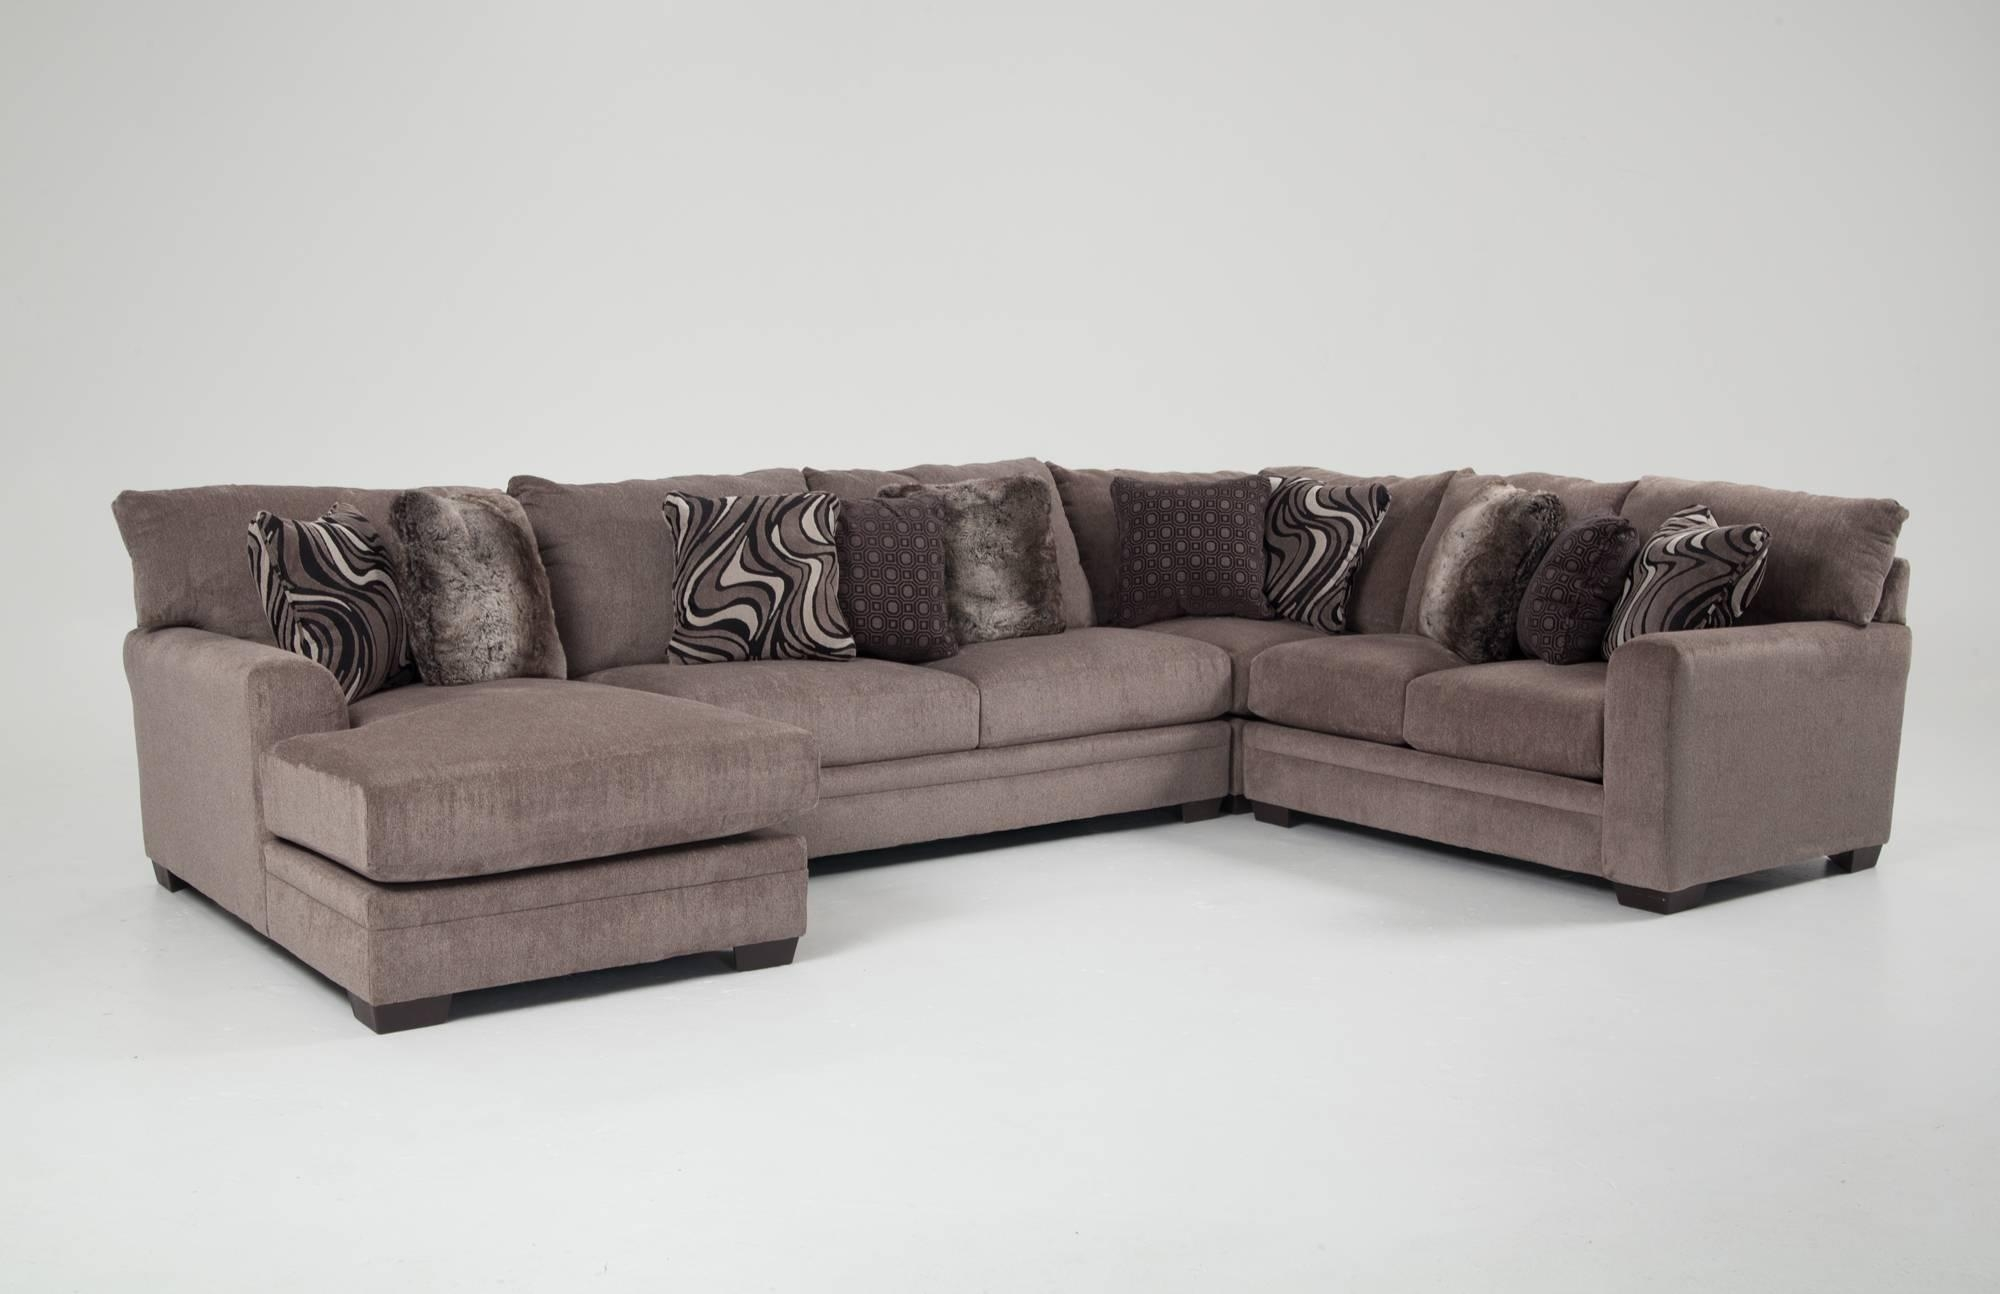 Luxe 2 Piece Sectional With Cuddler | Bob's Discount Furniture With Sectional Cuddler (Image 14 of 20)